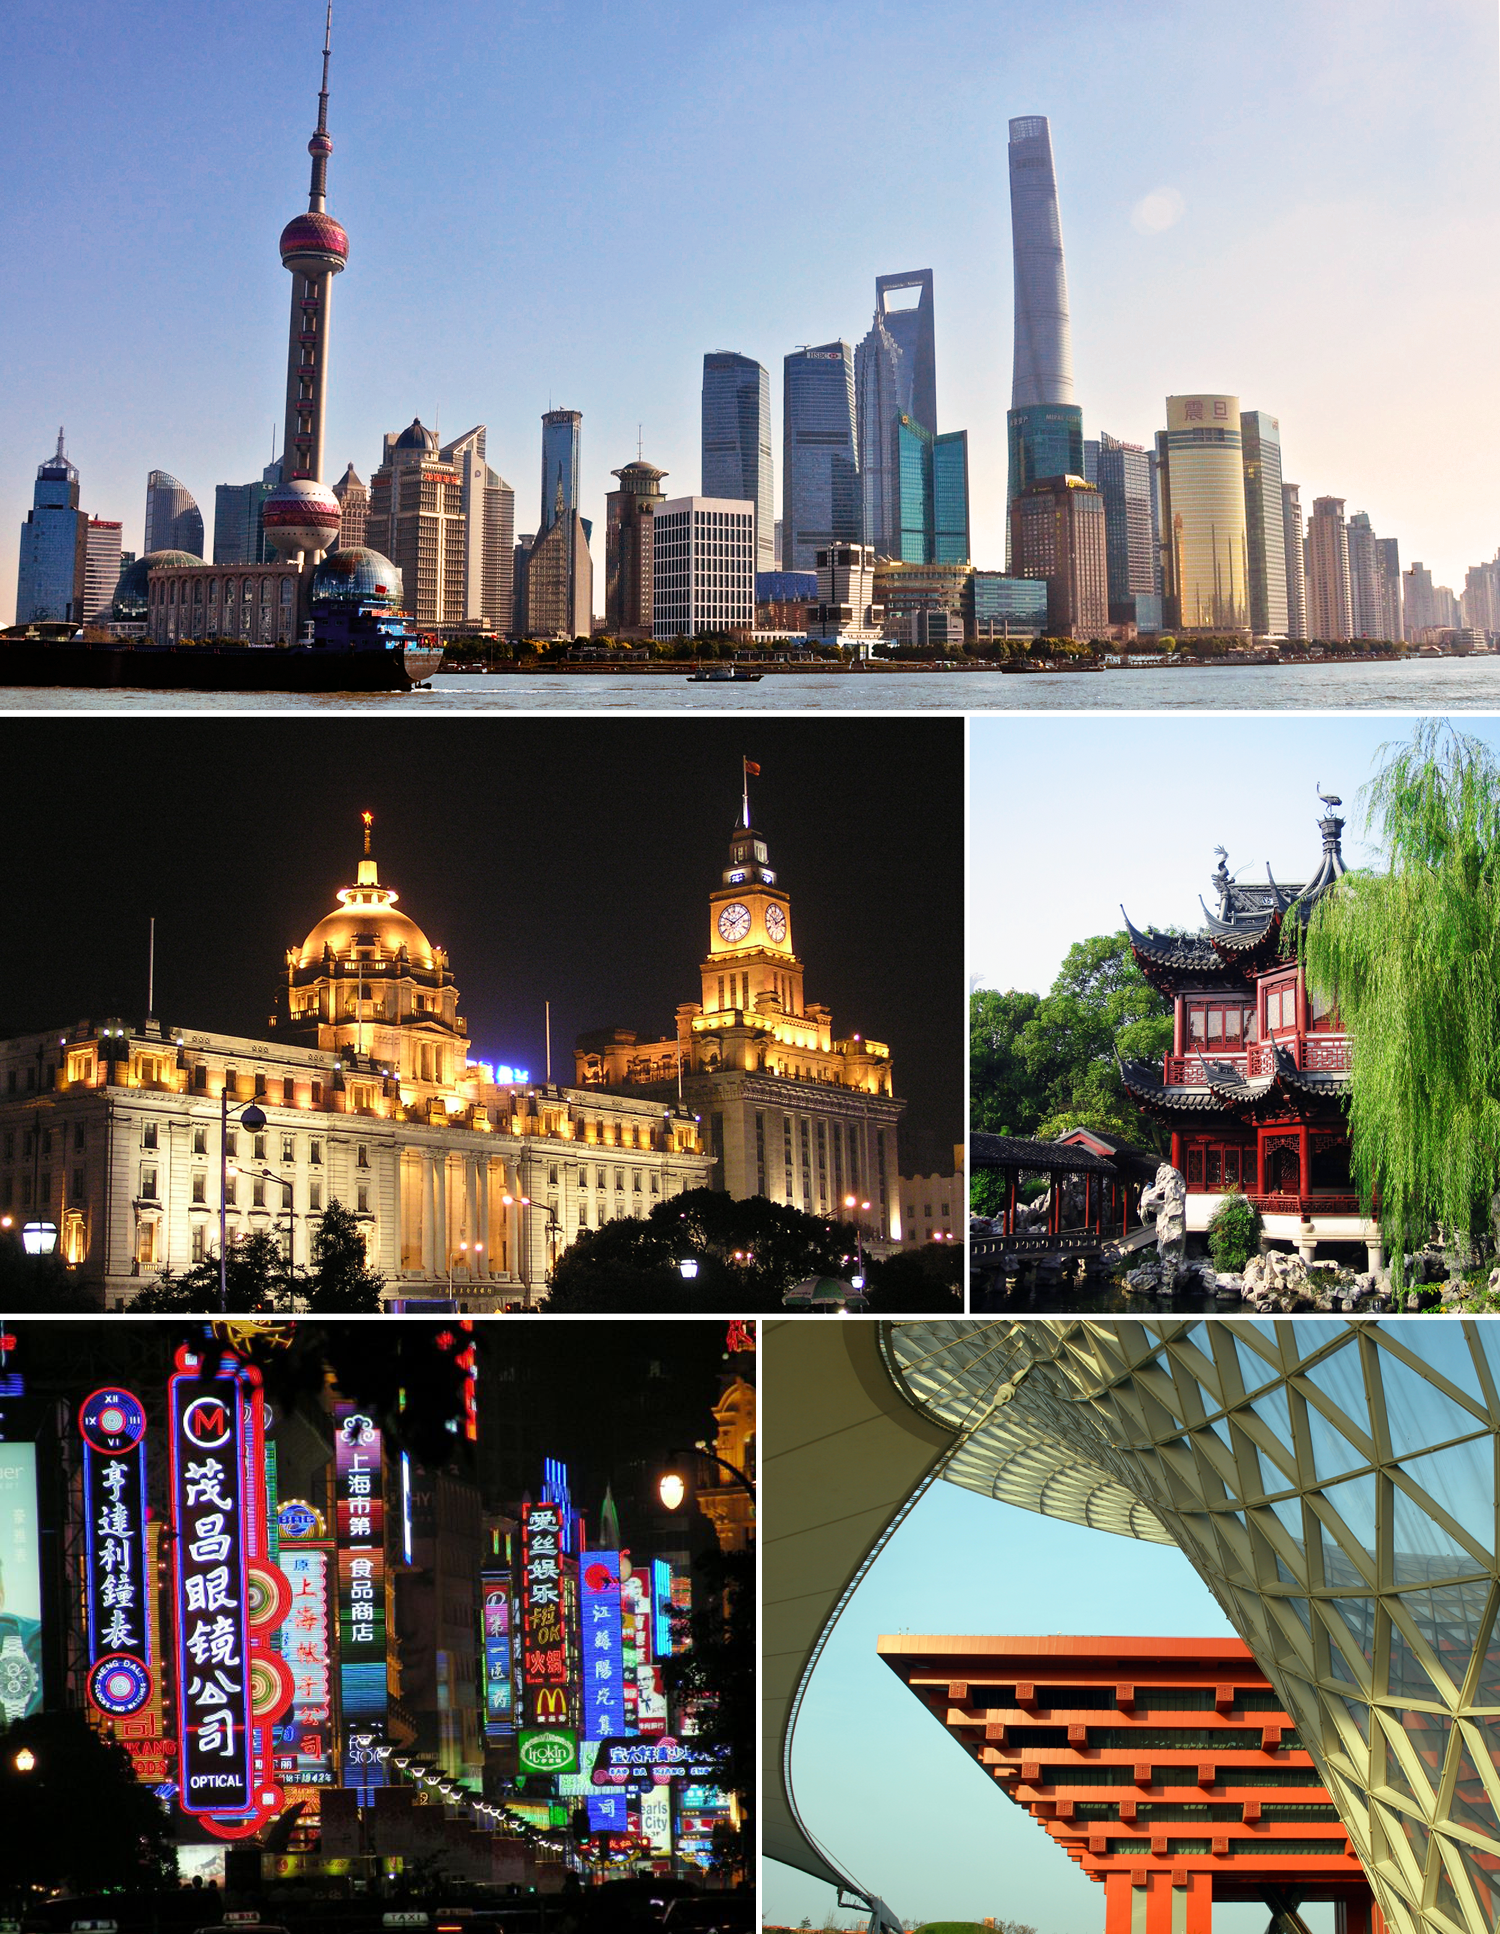 https://i2.wp.com/upload.wikimedia.org/wikipedia/commons/d/de/Shanghai_montage.png